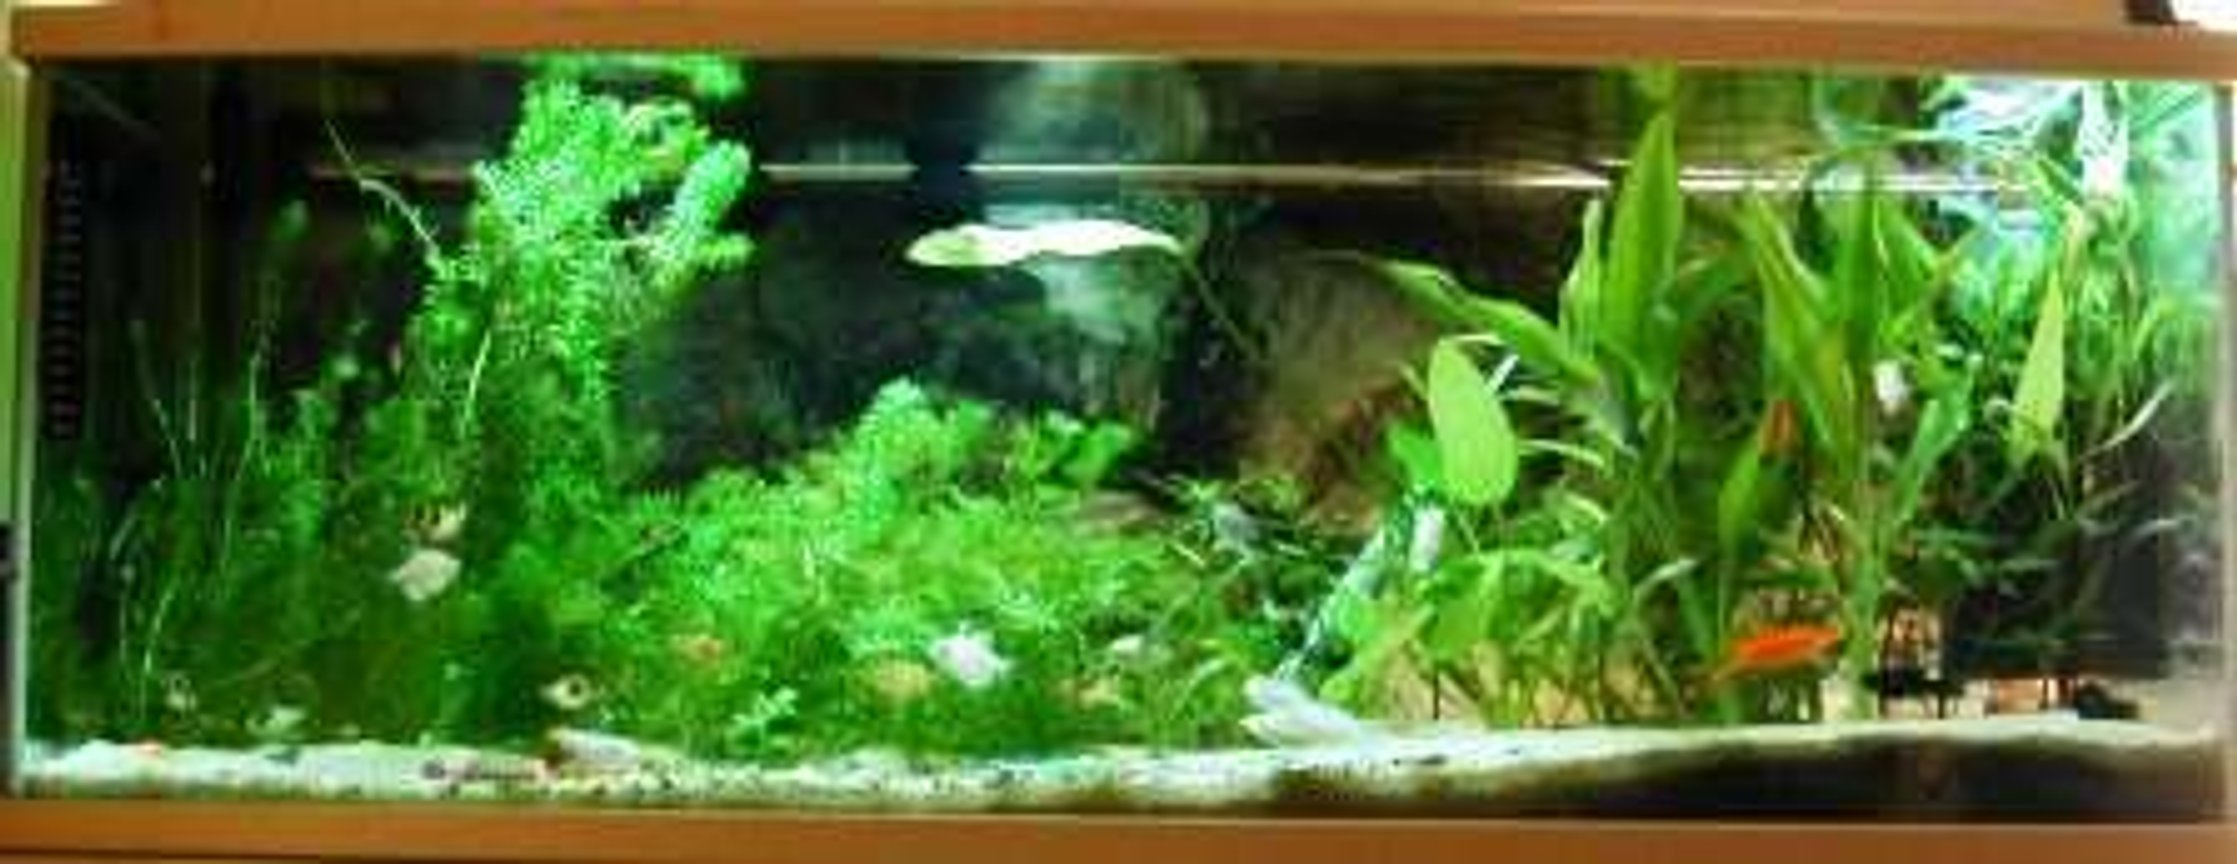 26 gallons planted tank (mostly live plants and fish) - Fullview of the tank.